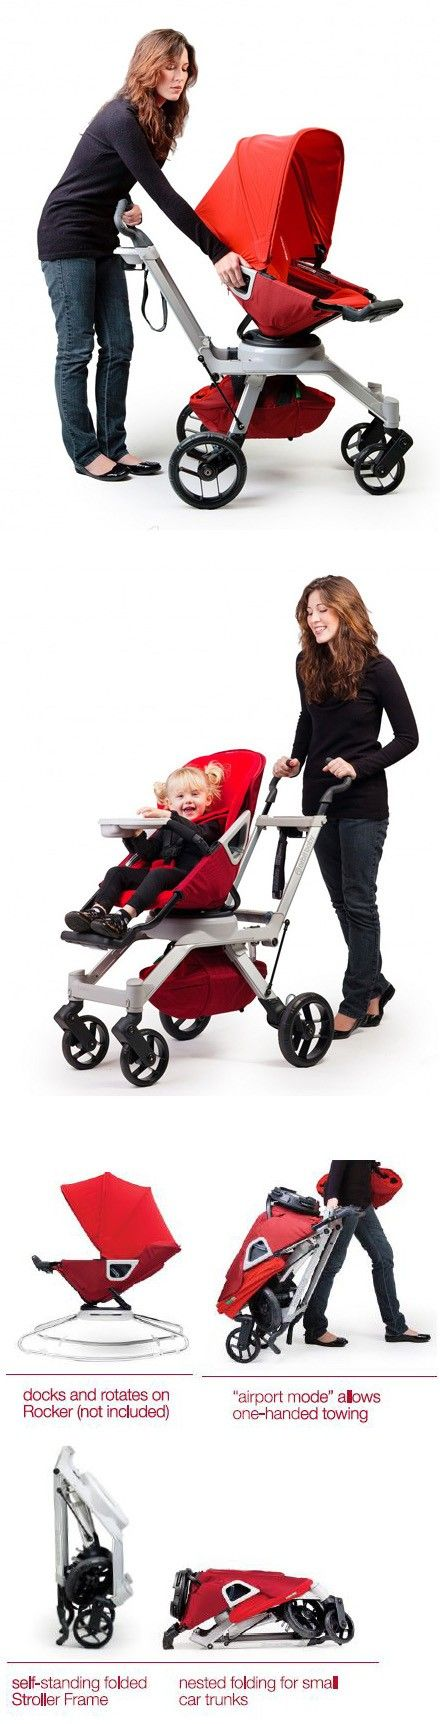 Orbit Baby G2 Stroller is a baby seat and stroller in one